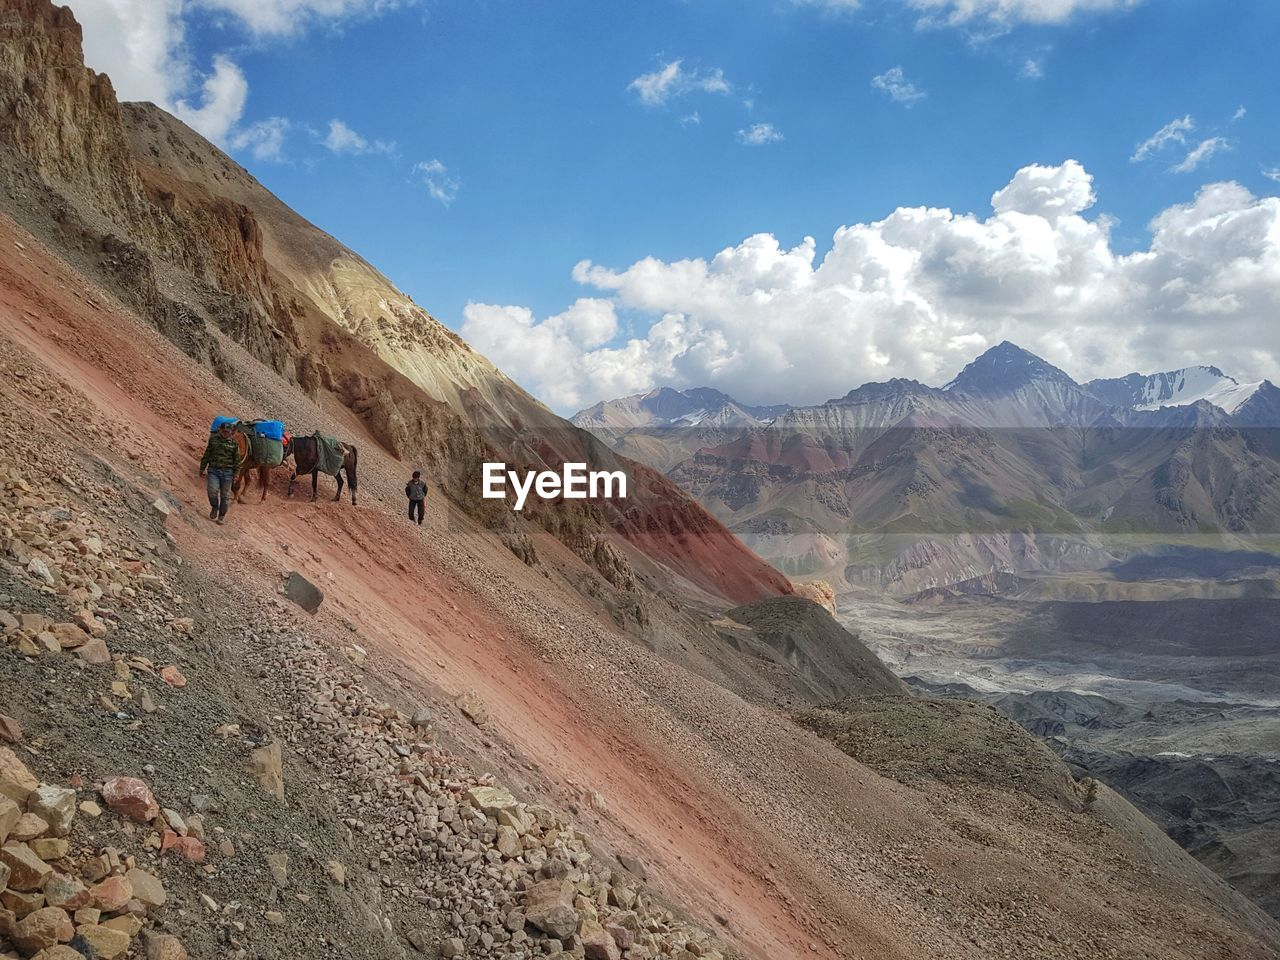 People Walking With Horses Carrying Loads On Mountains Against Sky